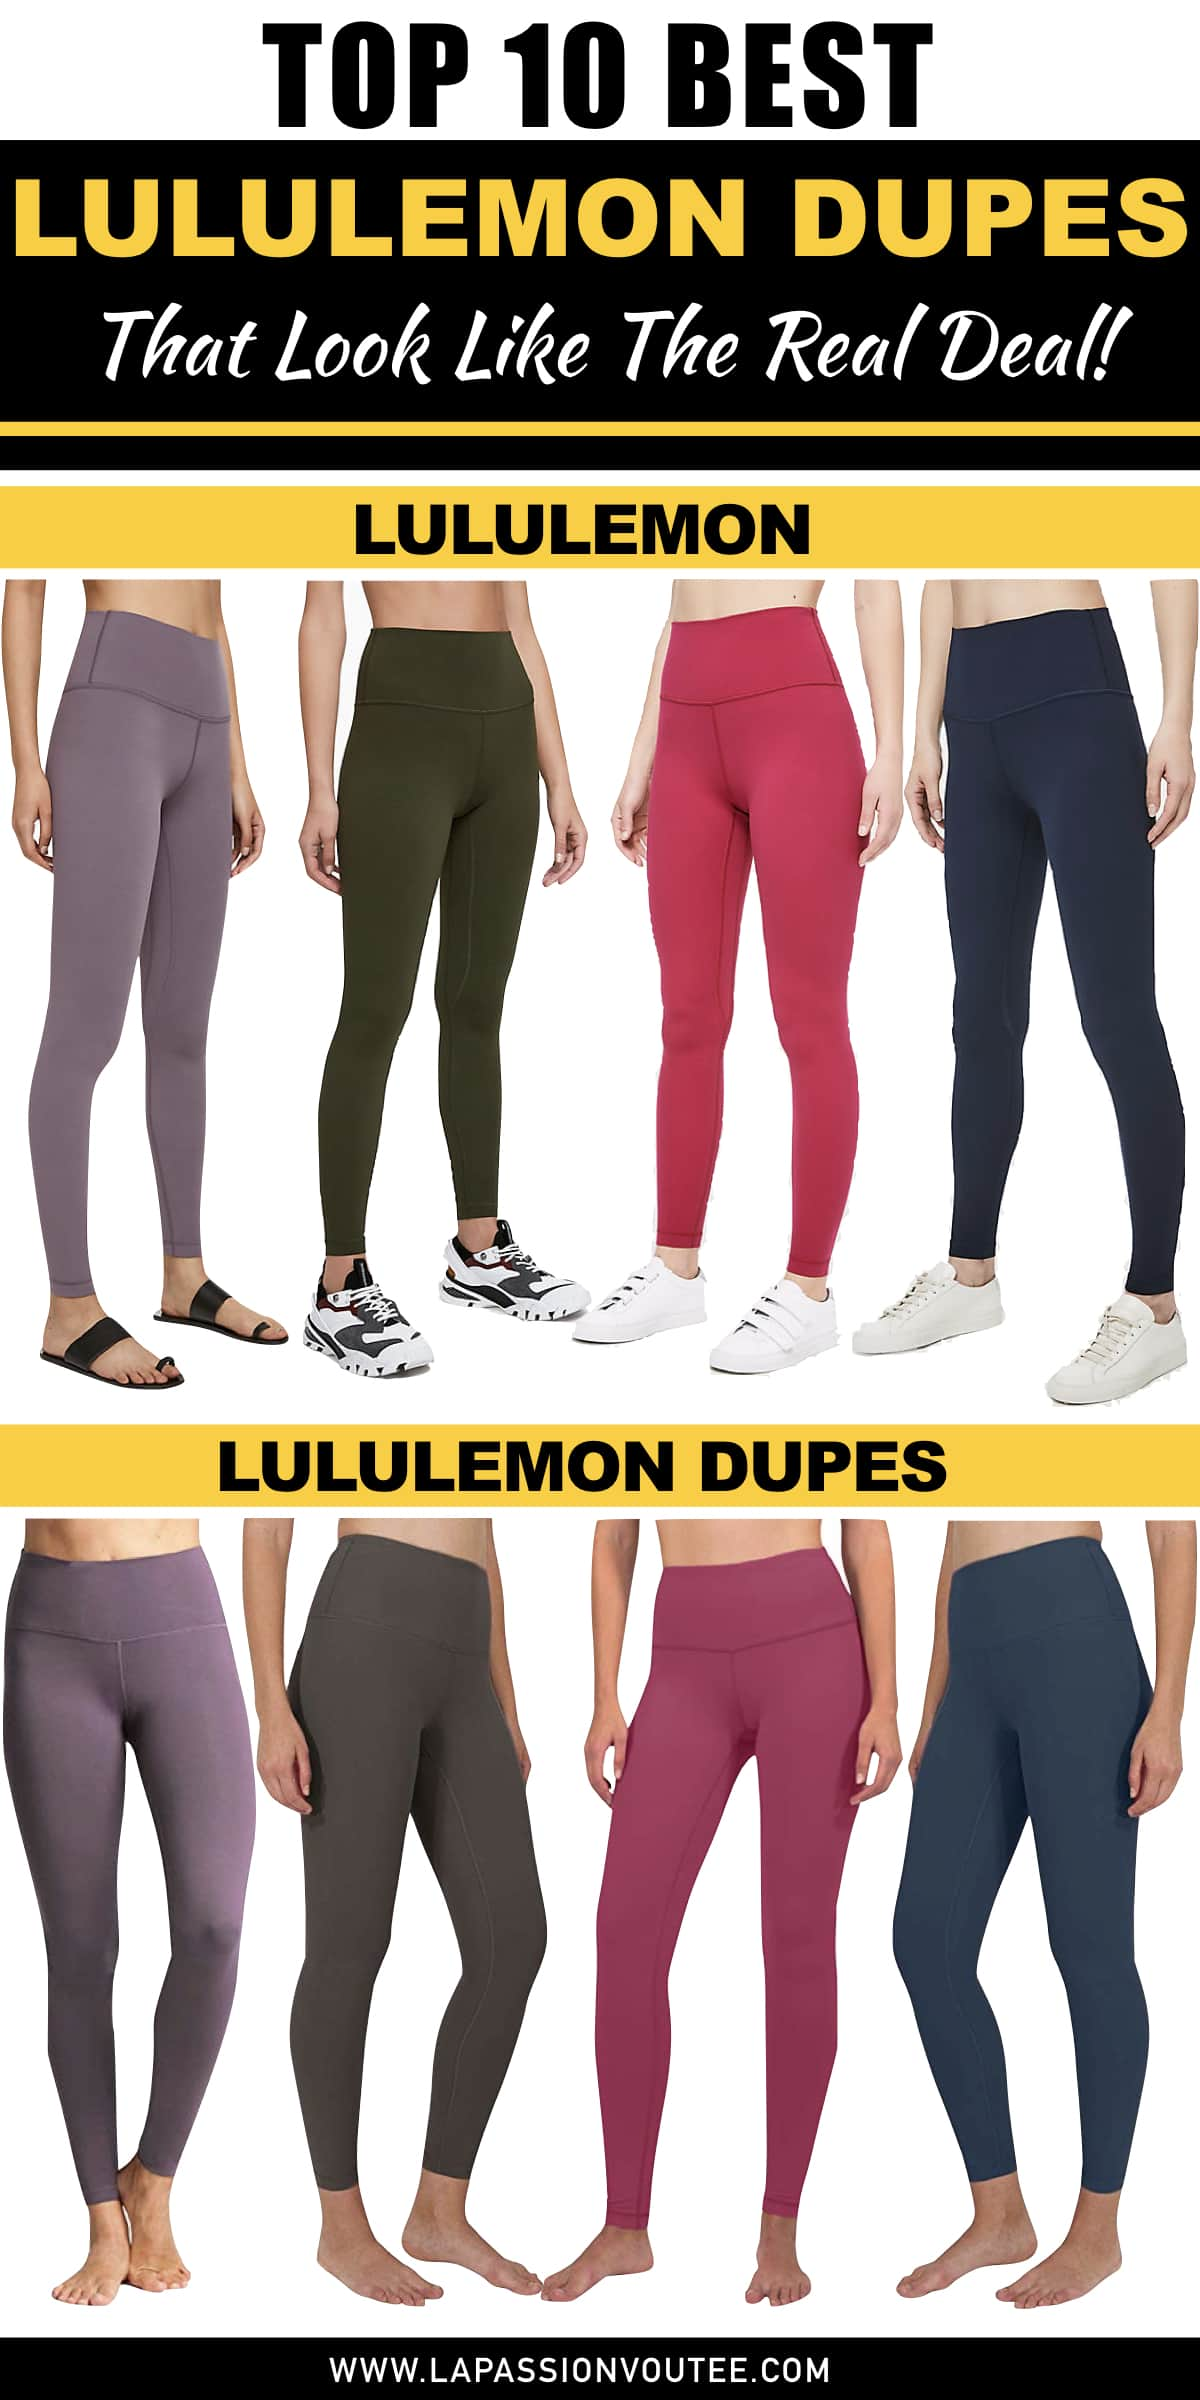 27349e531b After much research (and shopping), these are the best of the best Lululemon